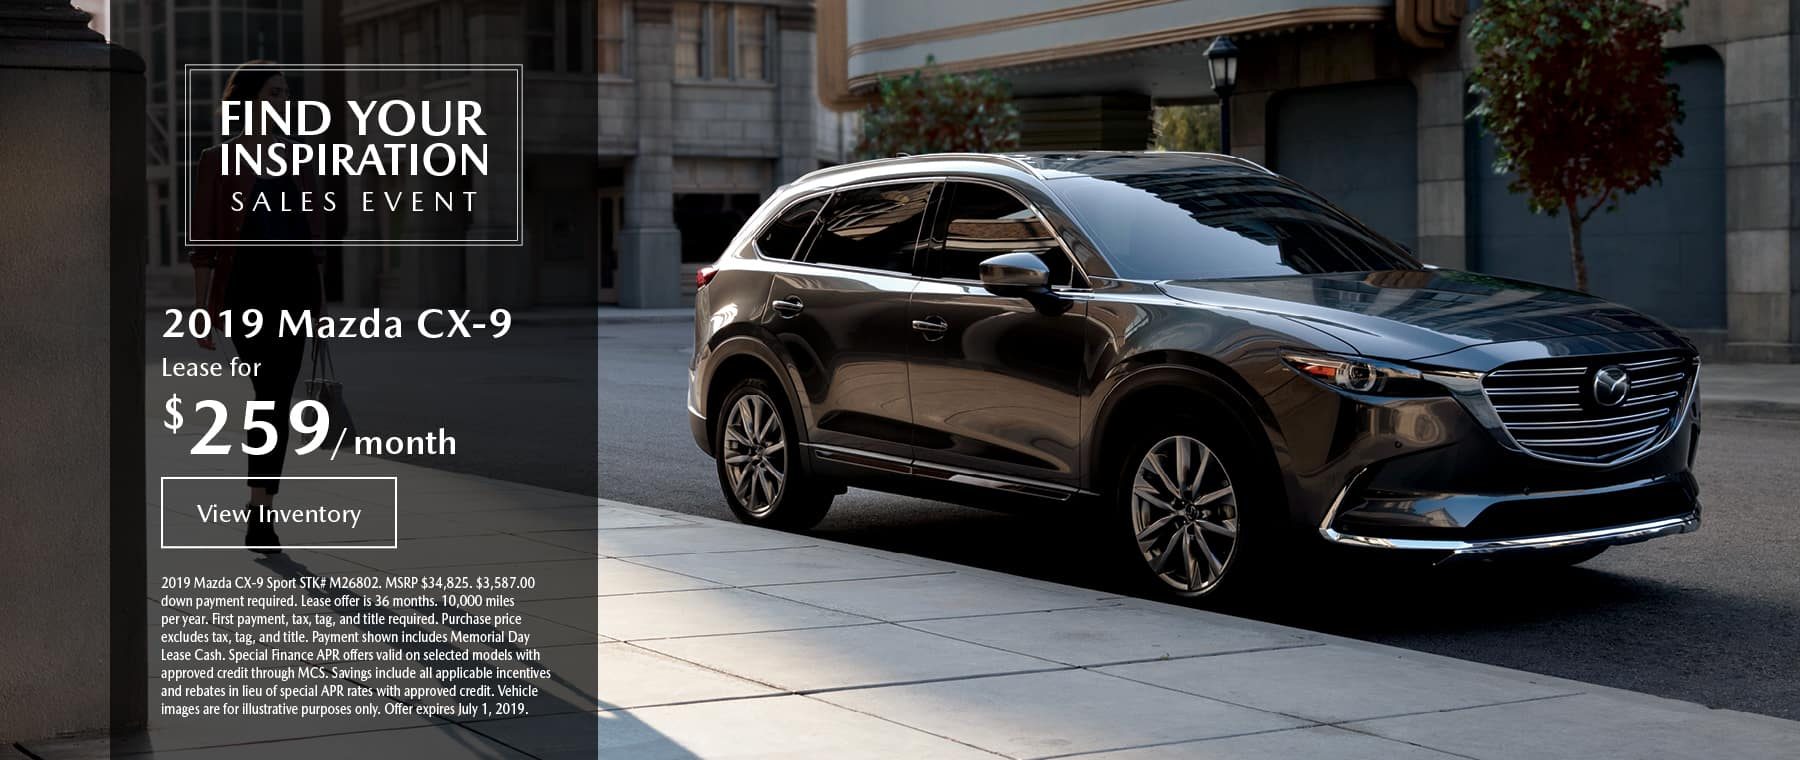 Lease the 2019 Mazda CX-9 for $259 per month, plus tax.